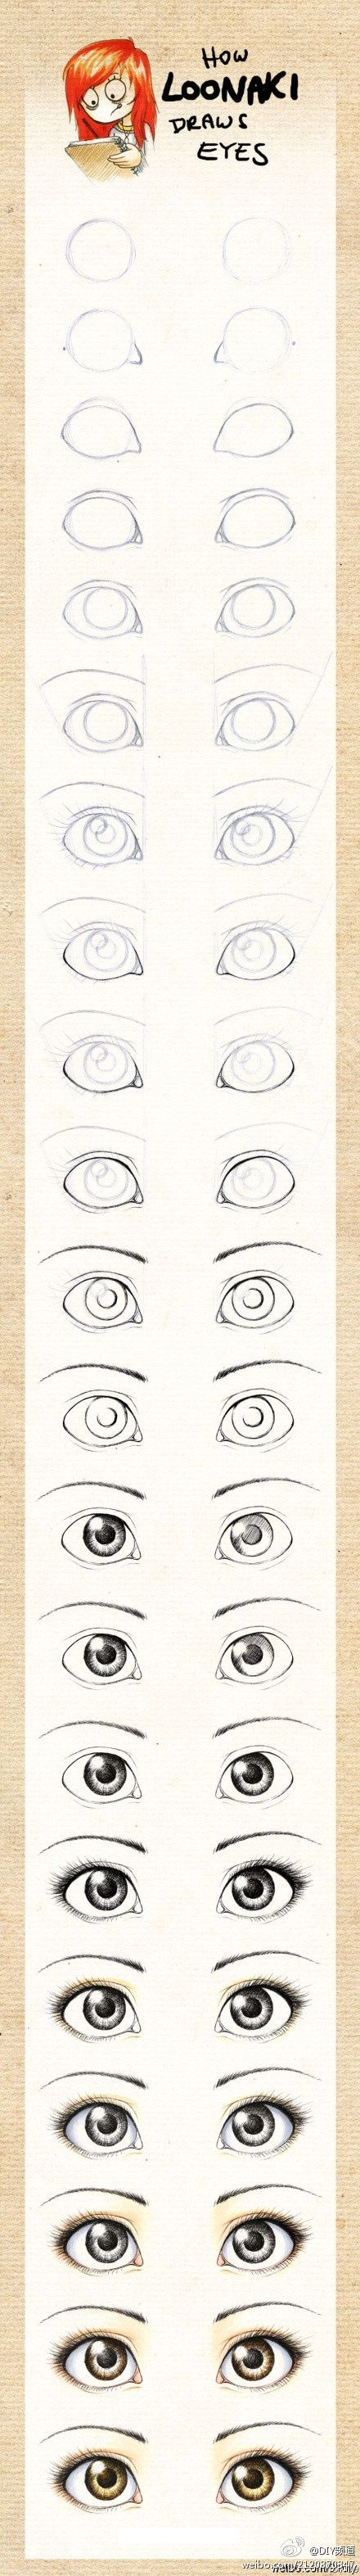 How to draw eyes by Momof3b2g